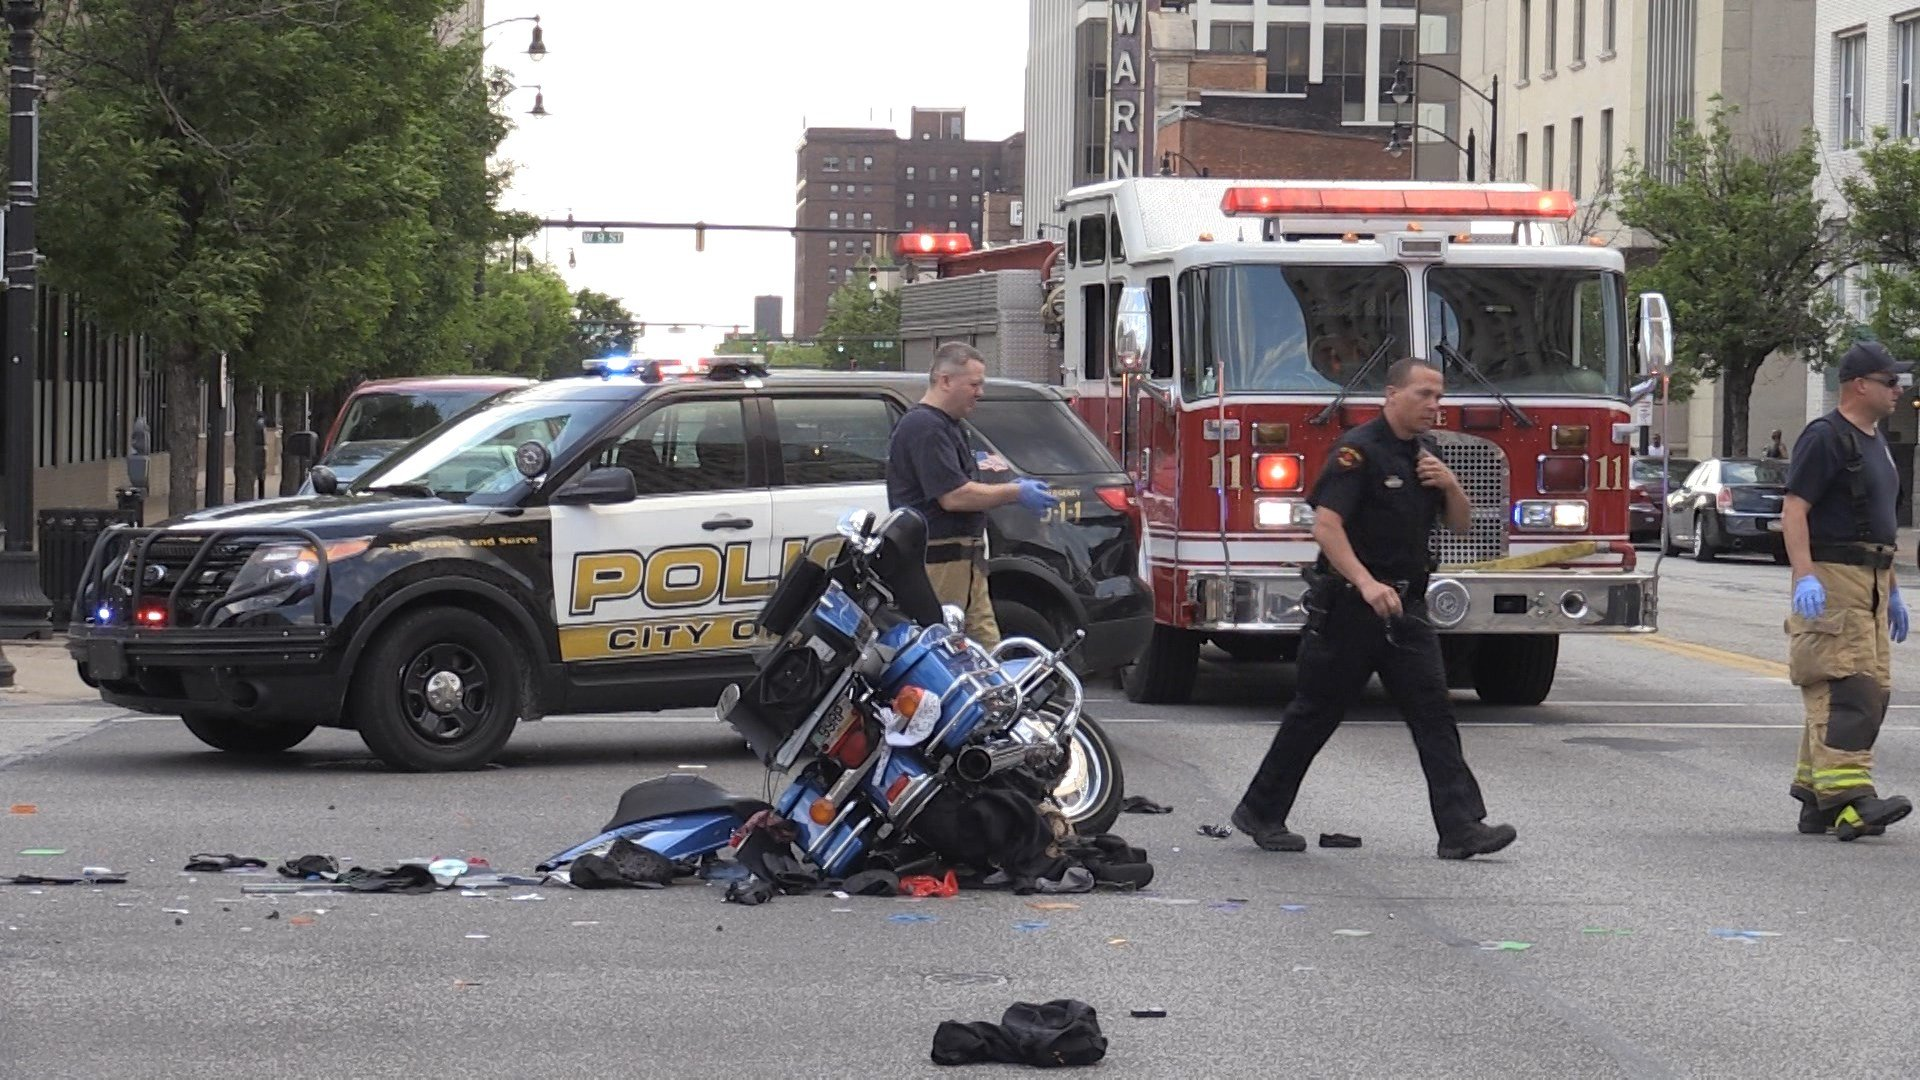 Motorcyclist Hurt in Accident Last Thursday Dies at